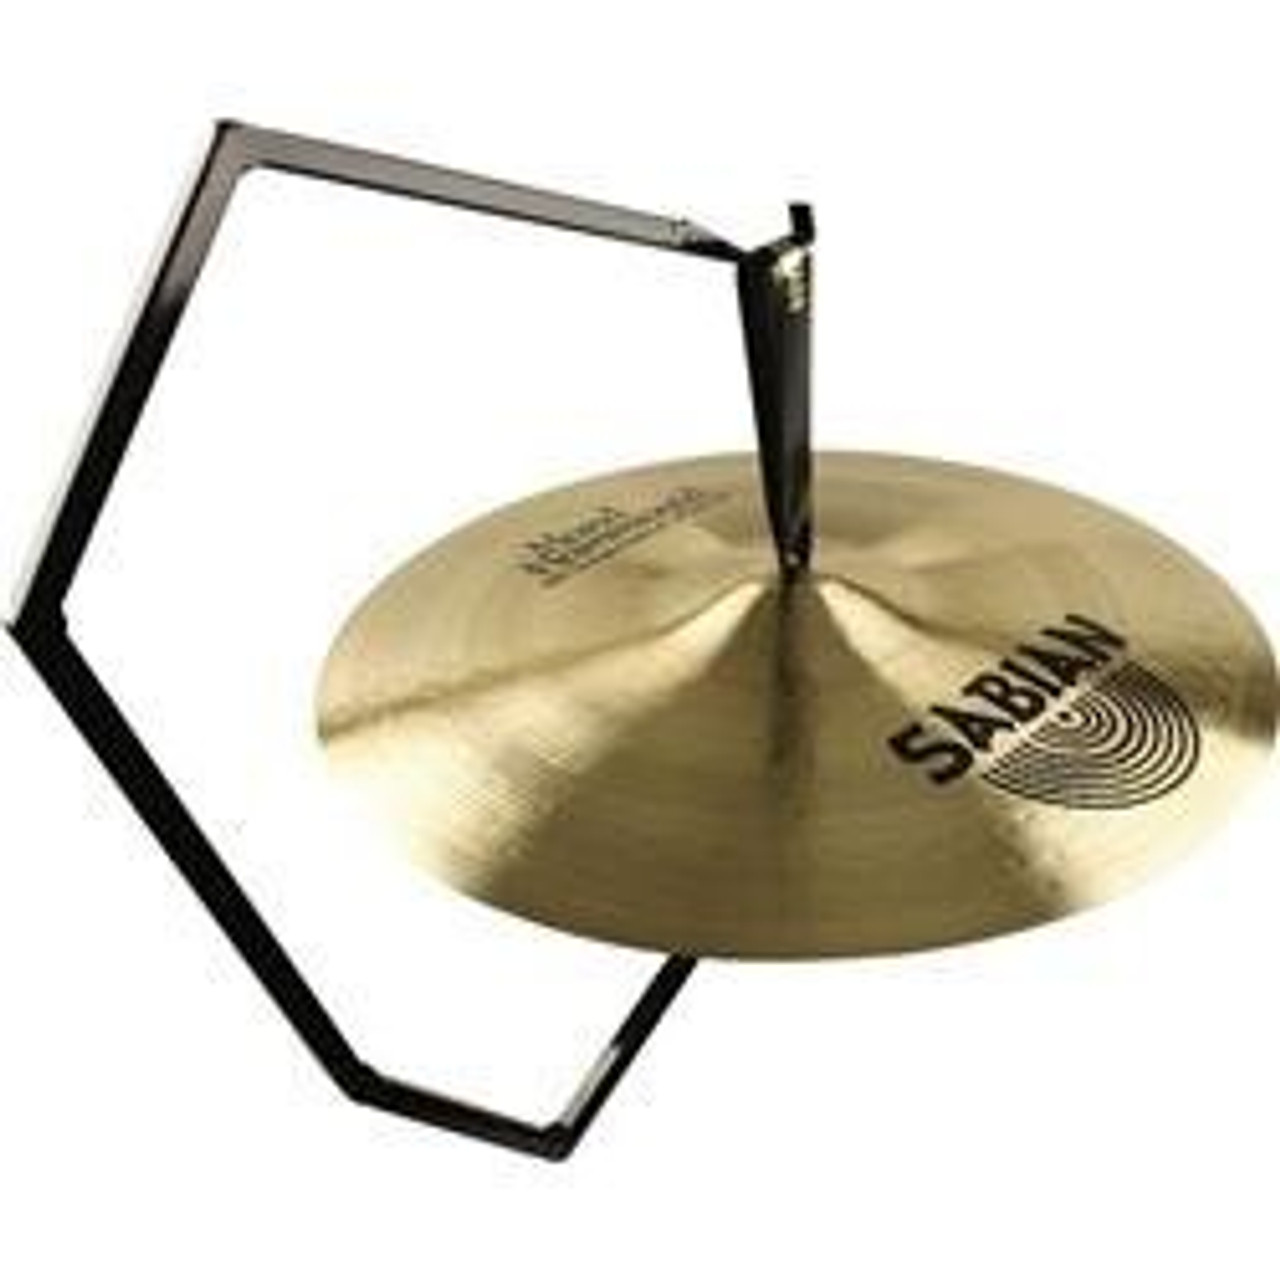 Sabian Goose Neck Stand Orchestral